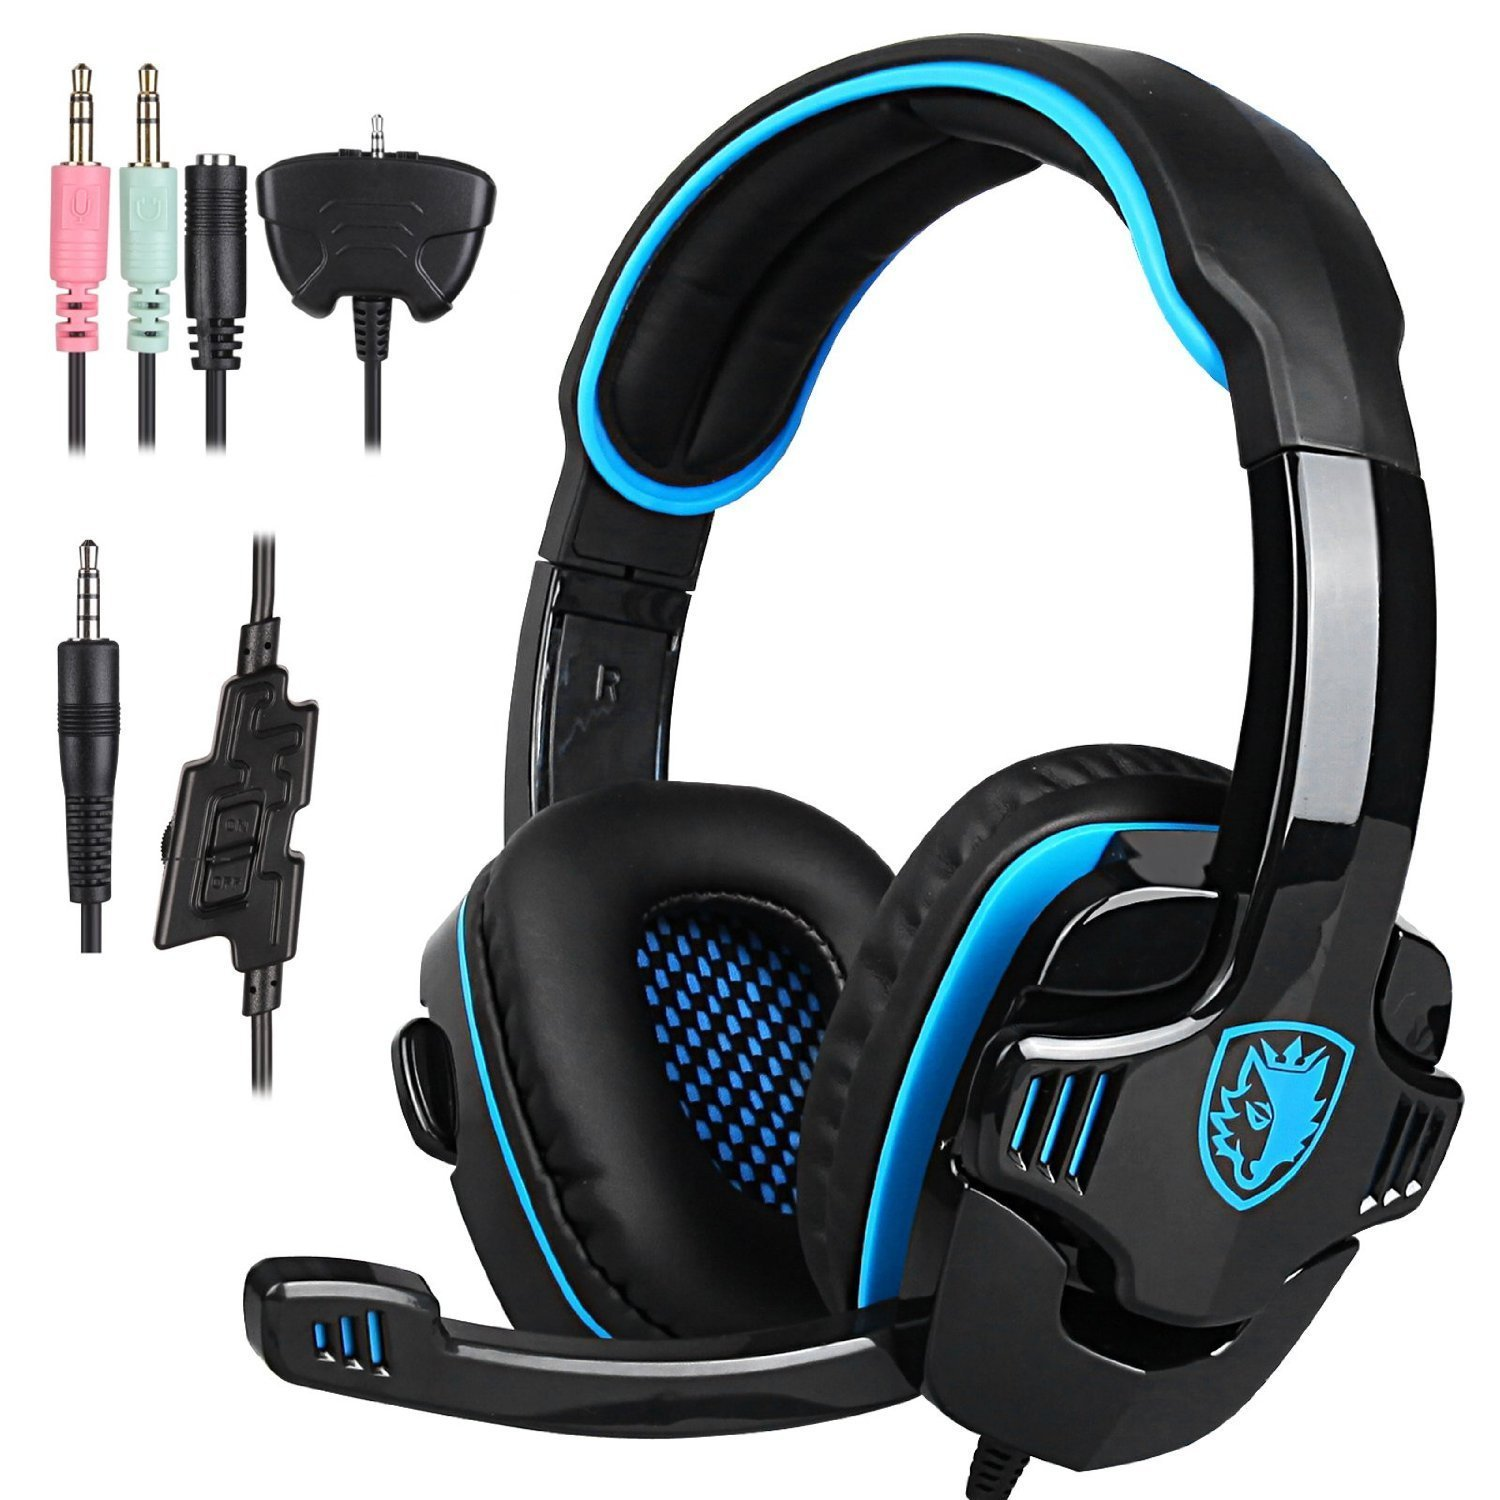 SADES PS4 Gaming Headset Headphone for PC Laptop Xbox One with Microphone SA708GT